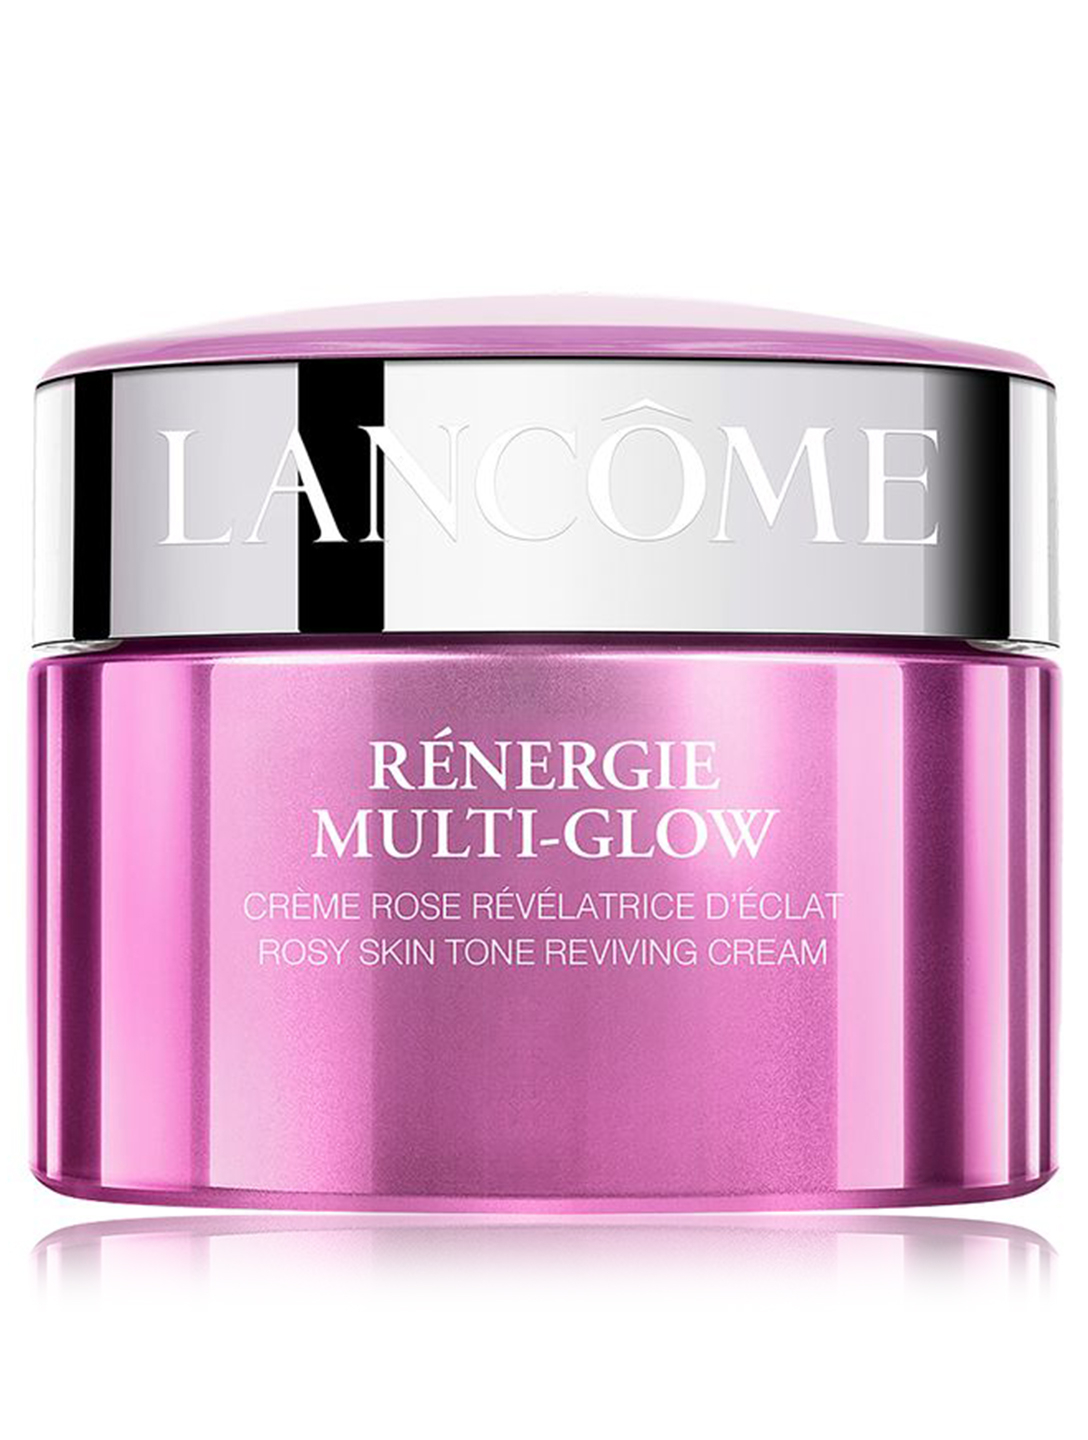 LANCÔME Rénergie Multi-Glow Rosy Skin Tone Reviving Cream Beauty